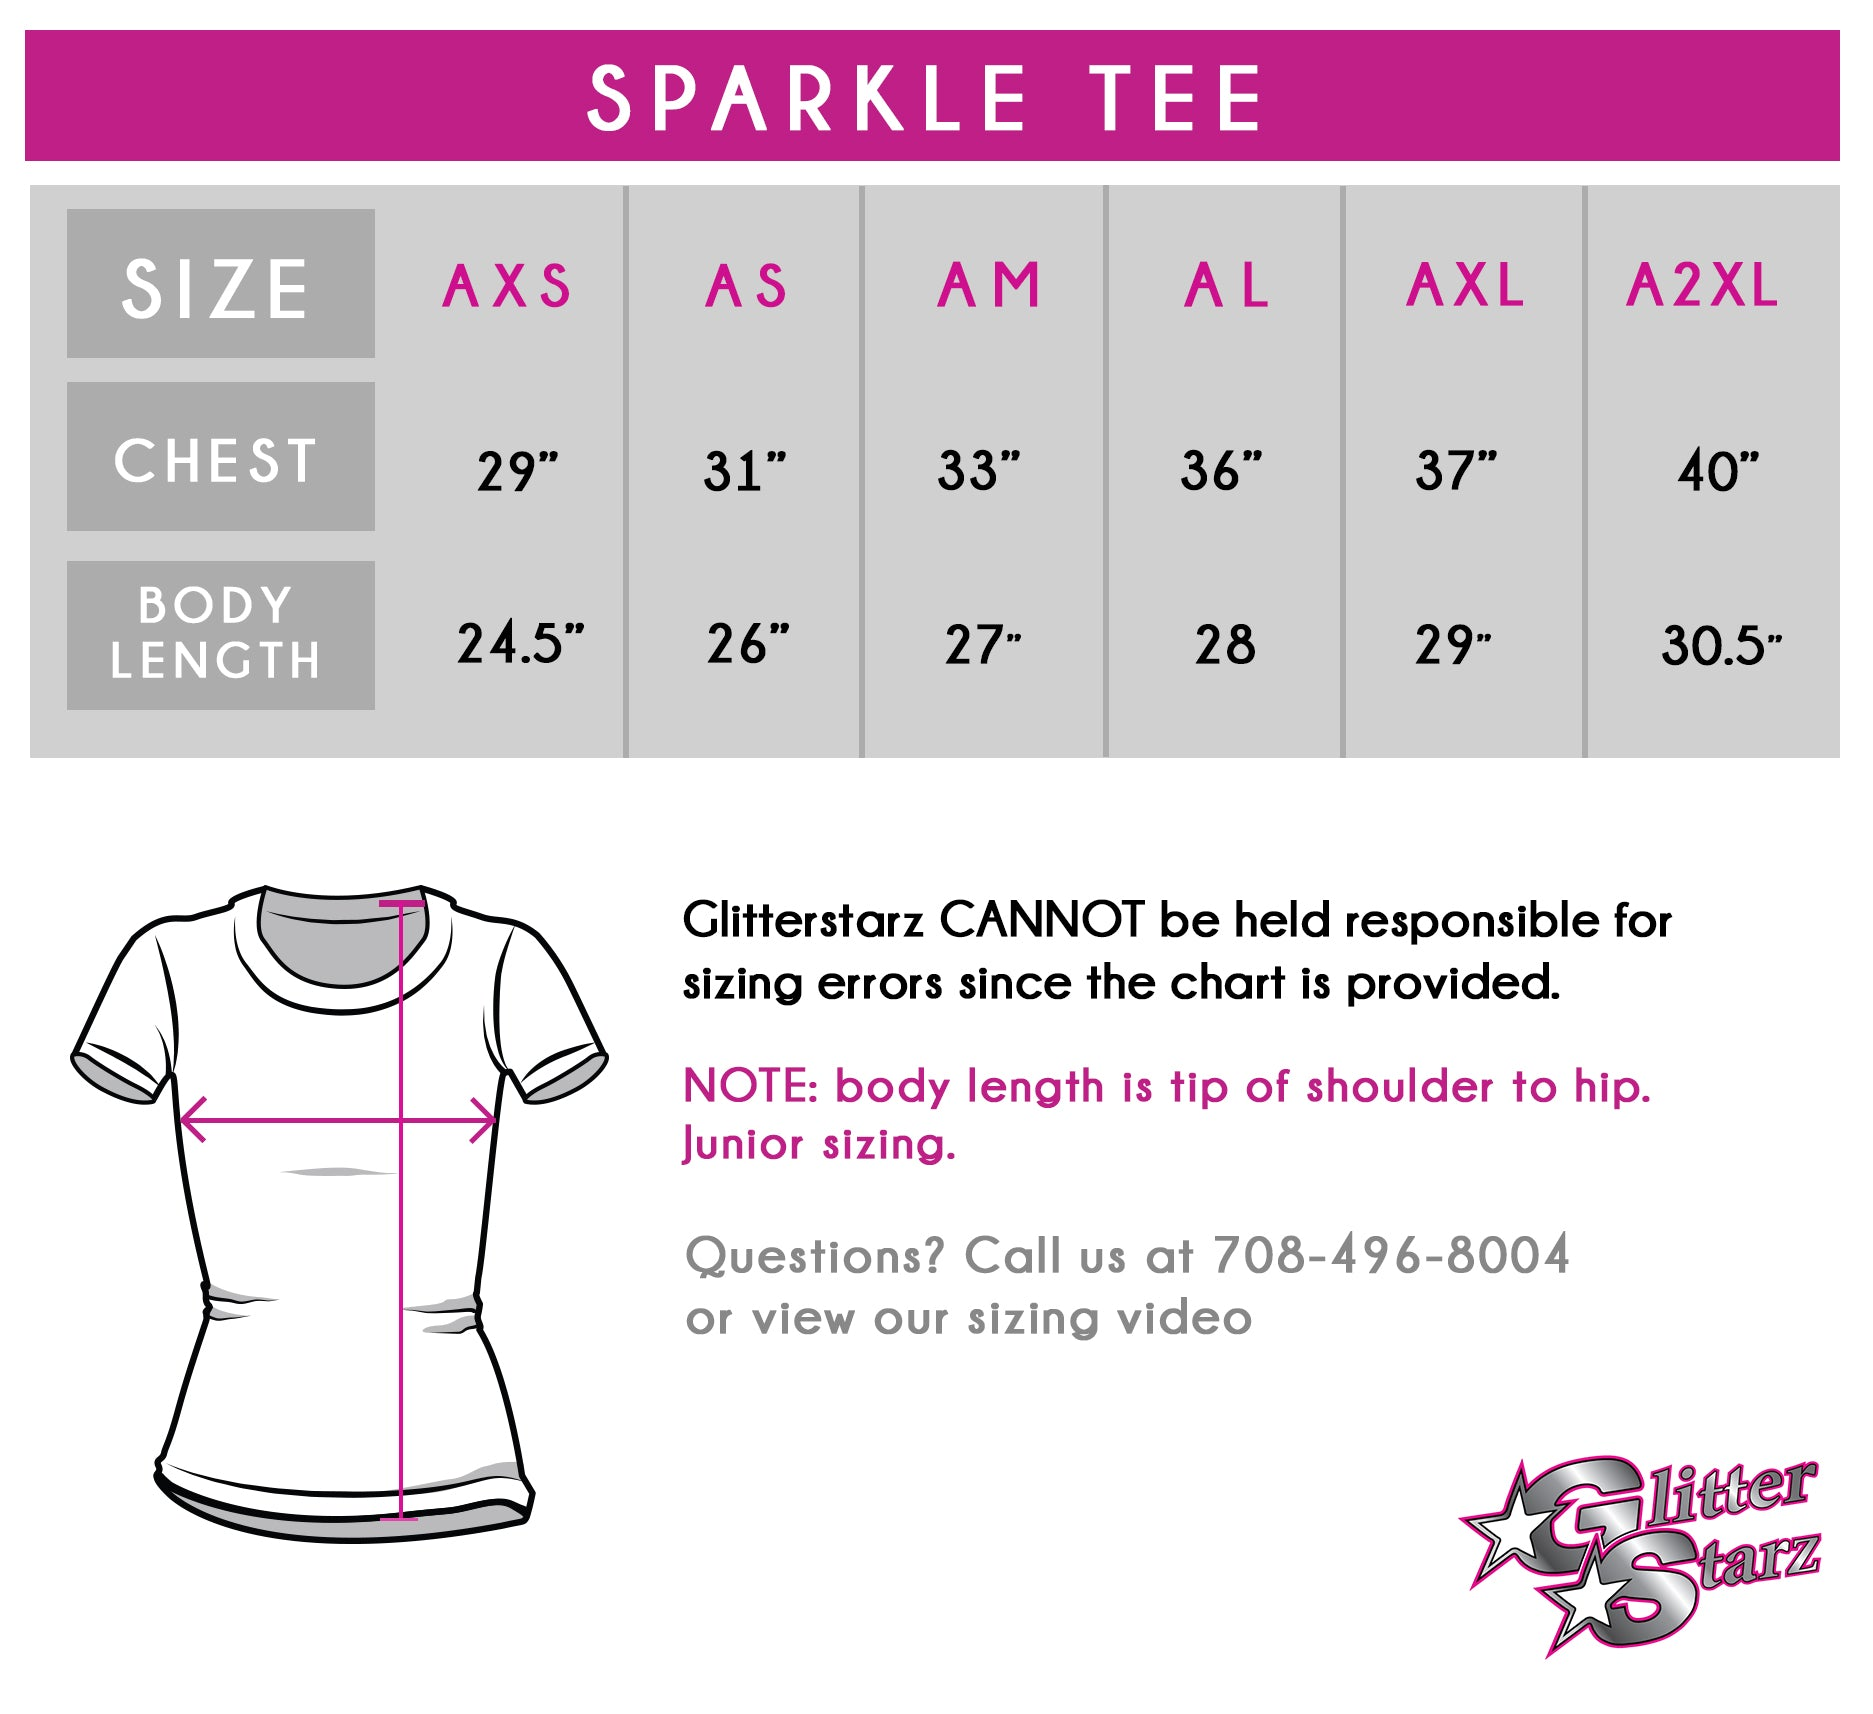 Breast Cancer Awareness Sparkle Tee